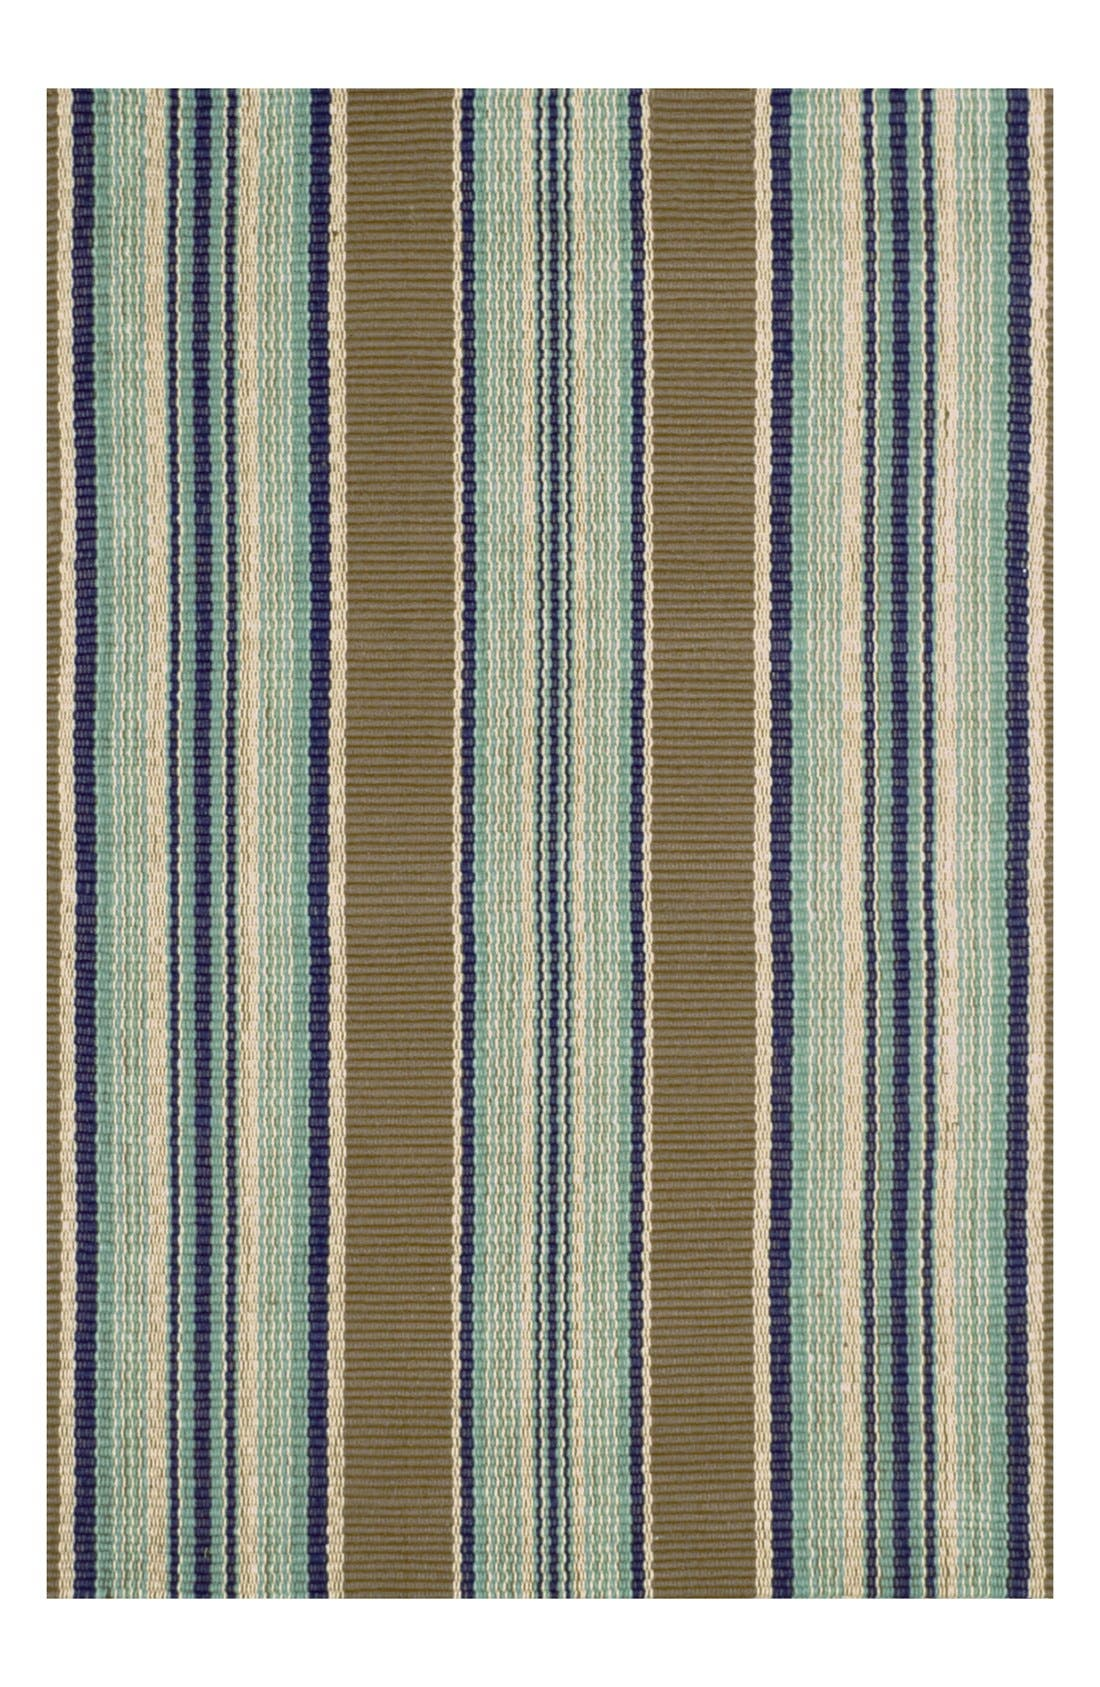 DASH & ALBERT 'Blue Heron' Stripe Cotton Rug.